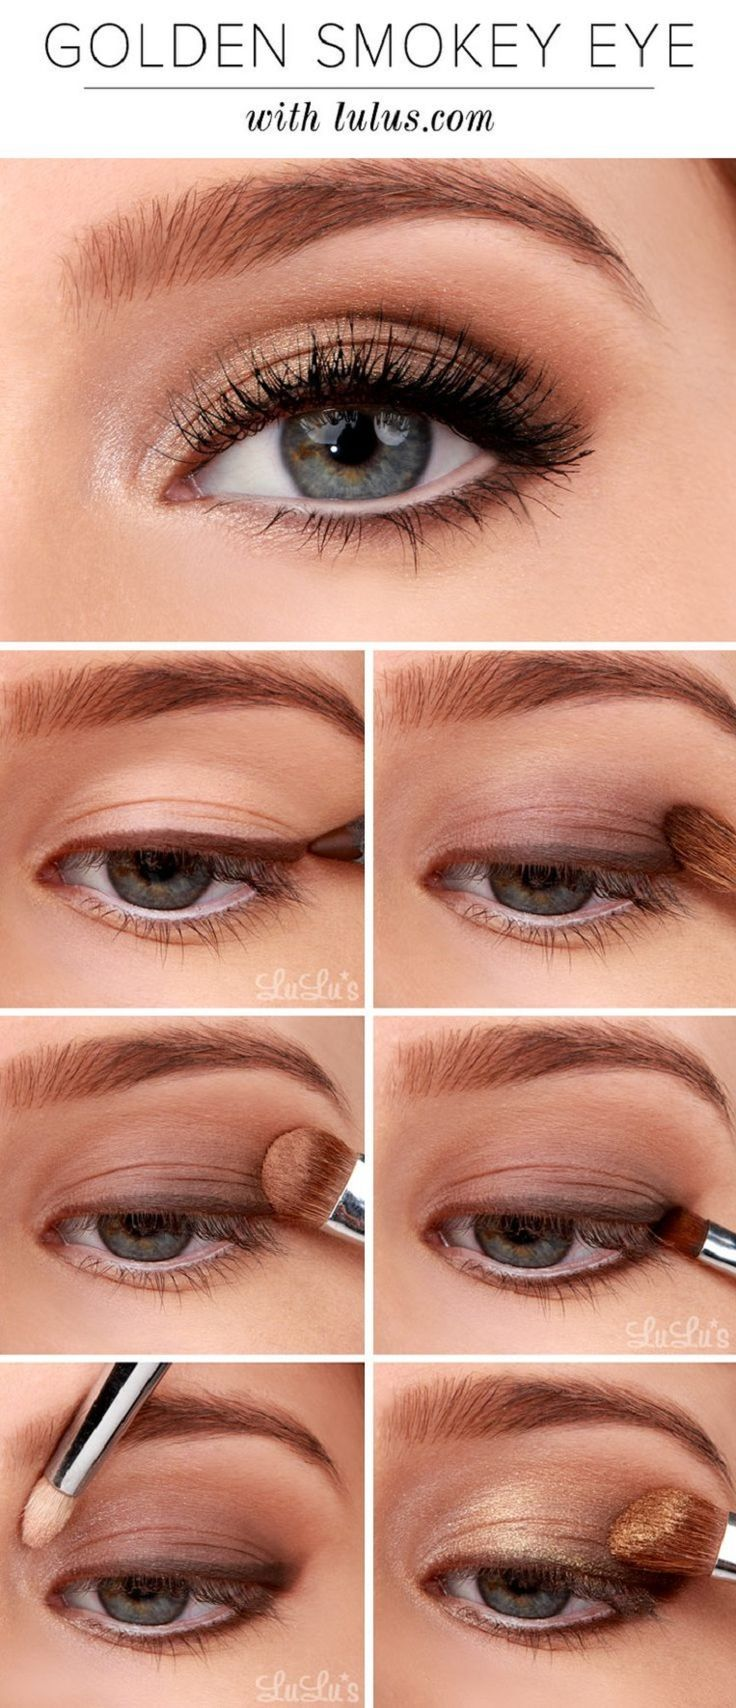 Best Eyebrow Shapes for Big Eyes